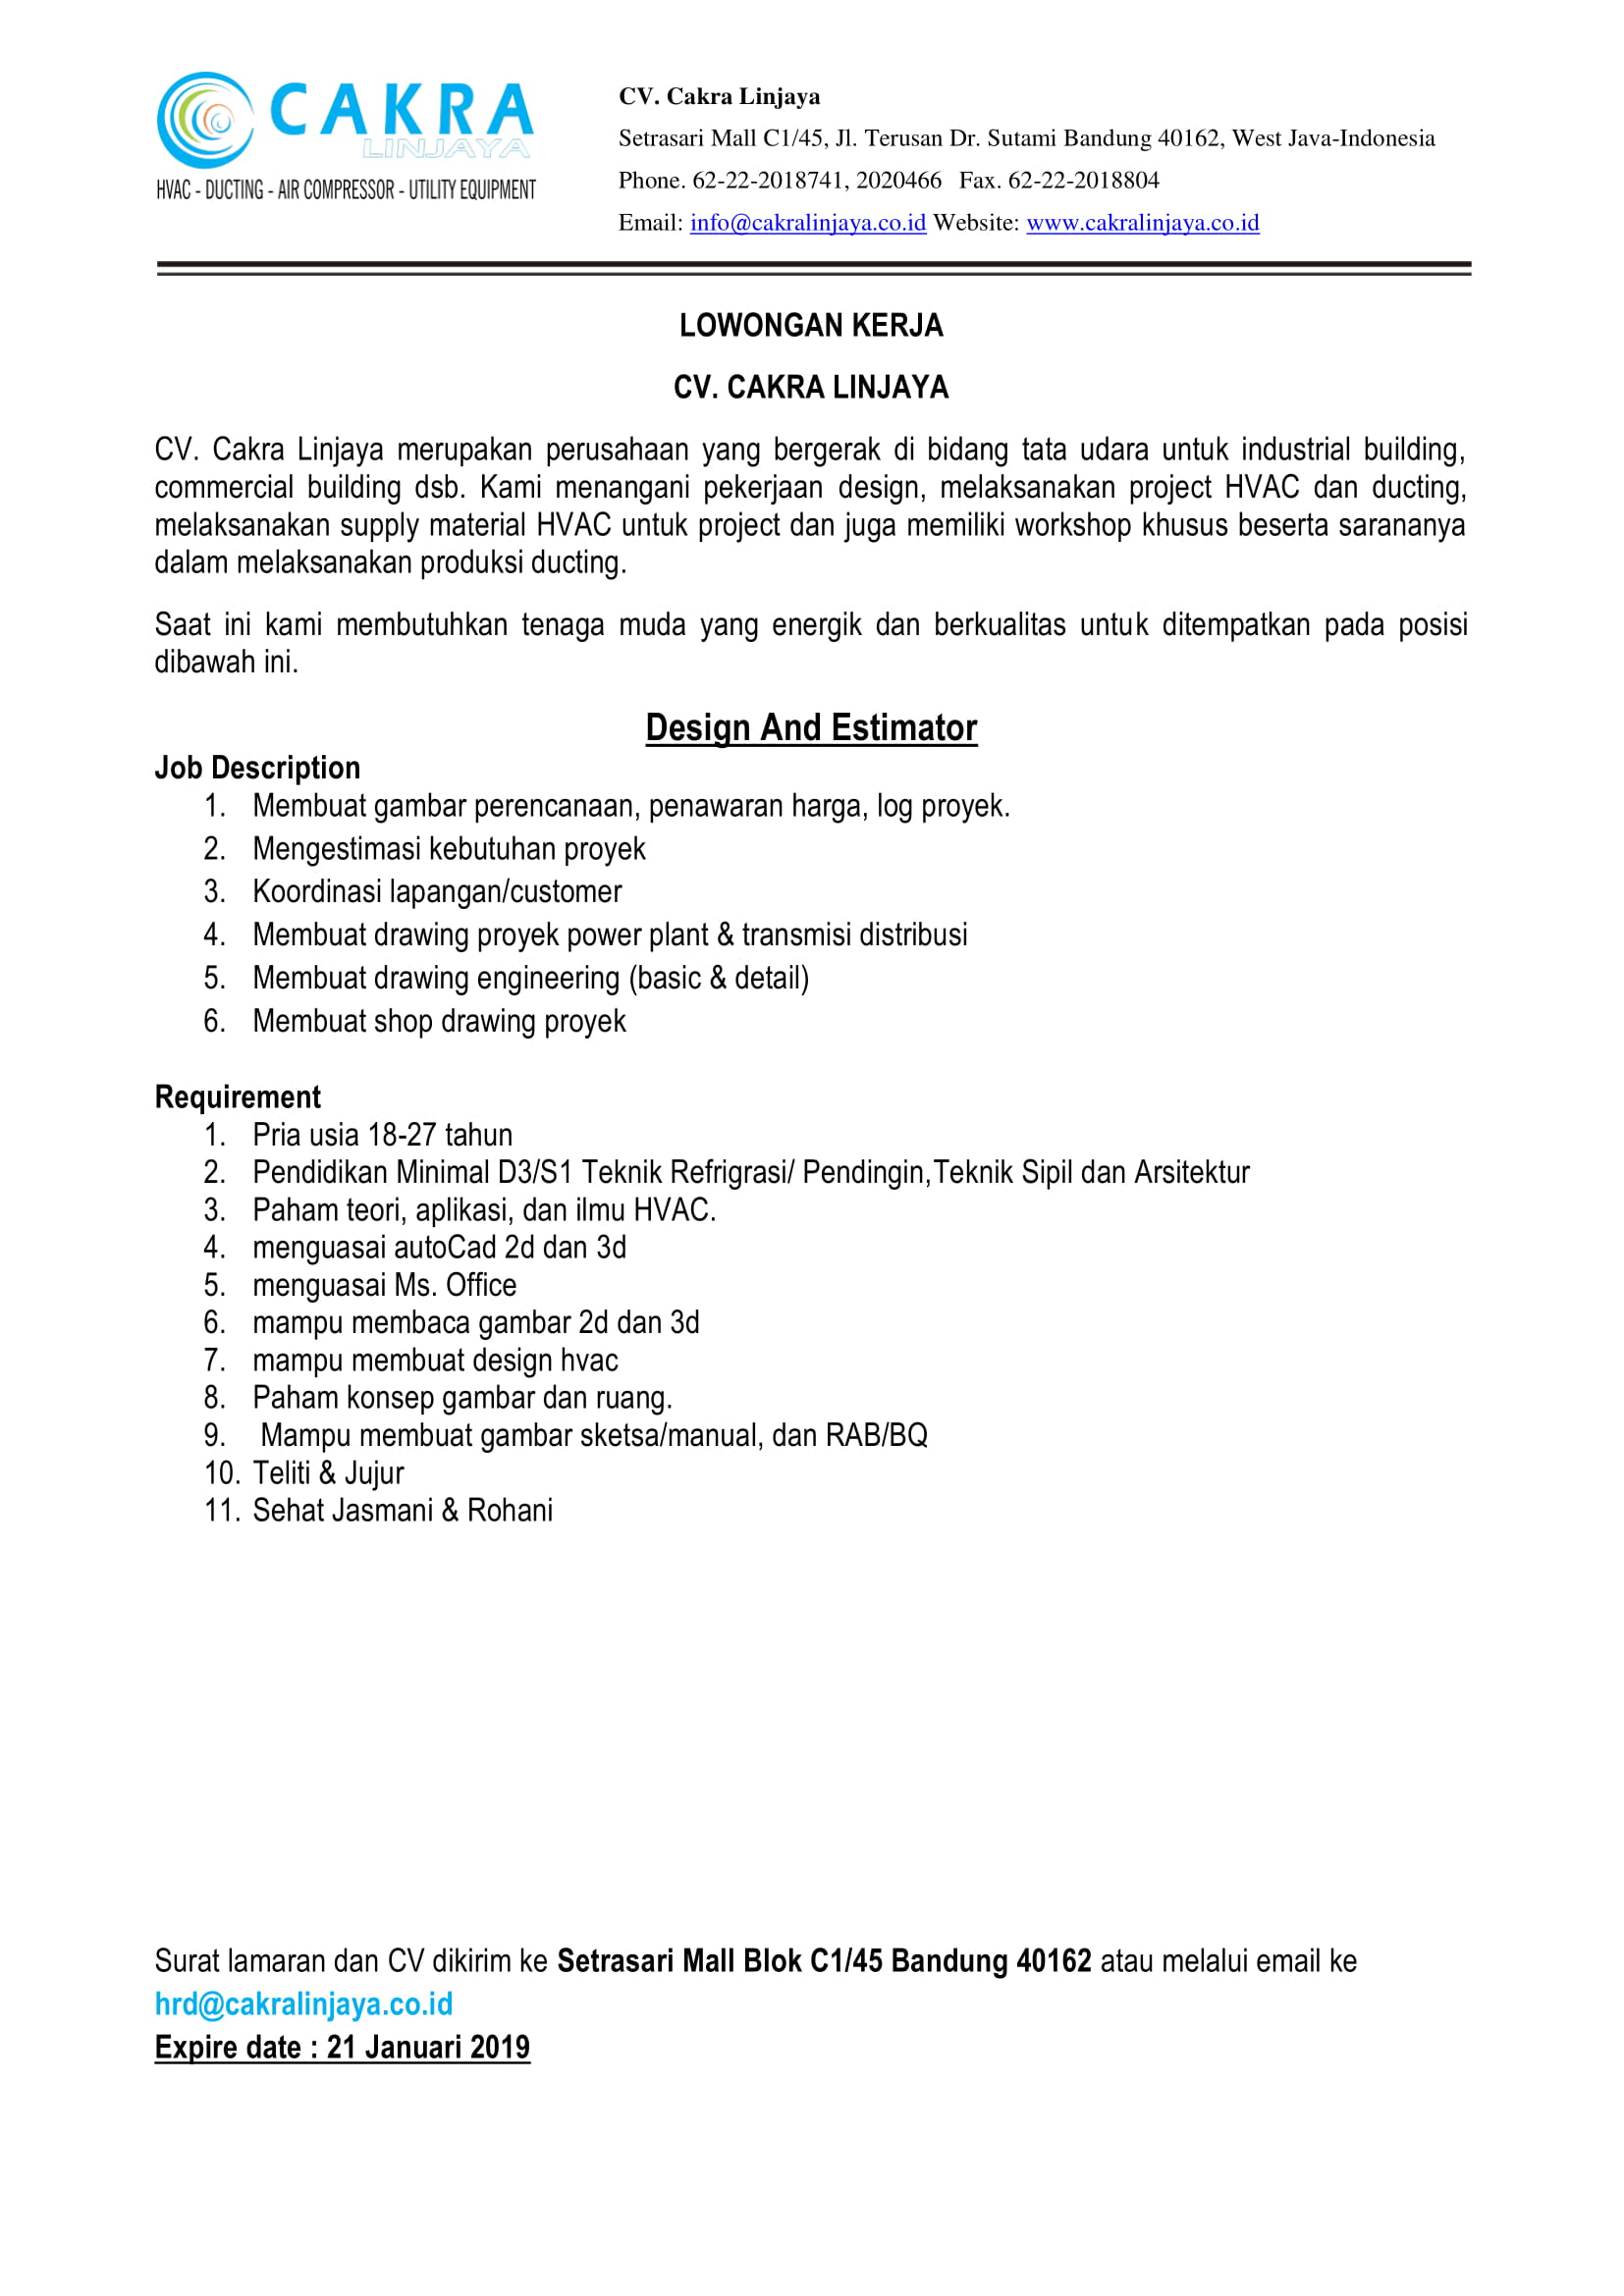 loker-design-and-estimator-1.jpg